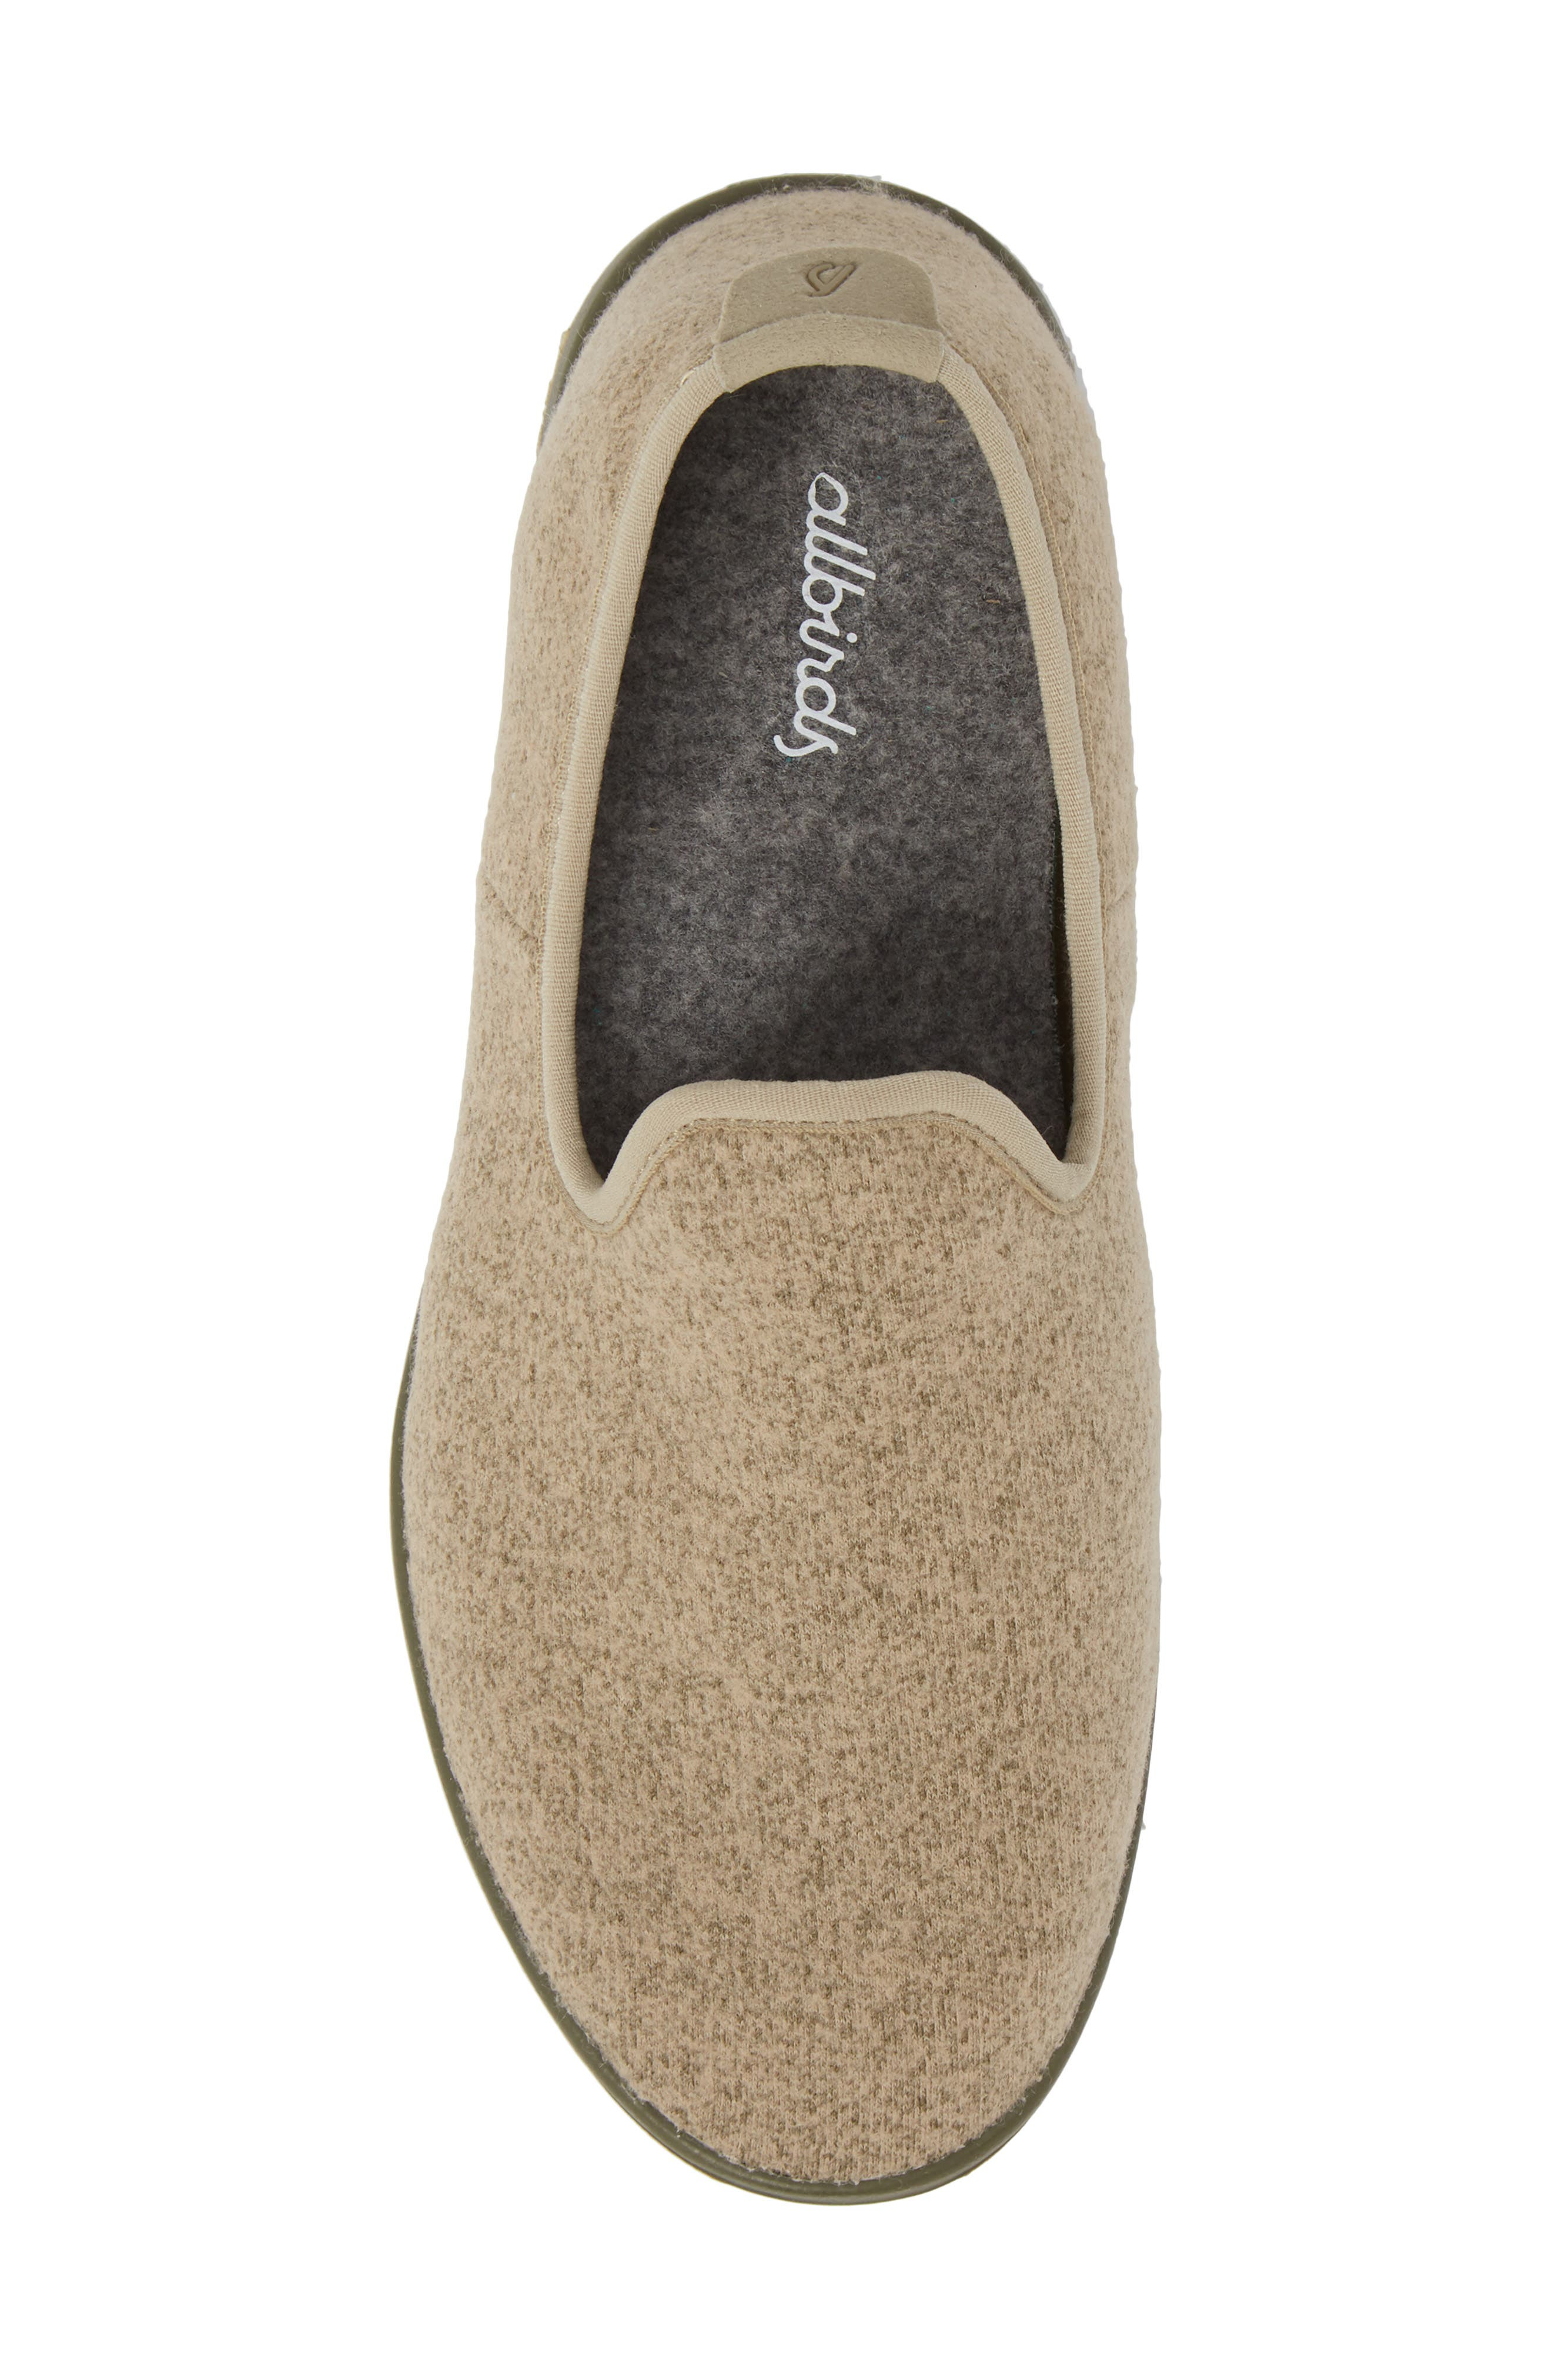 Wool Lounger,                             Alternate thumbnail 5, color,